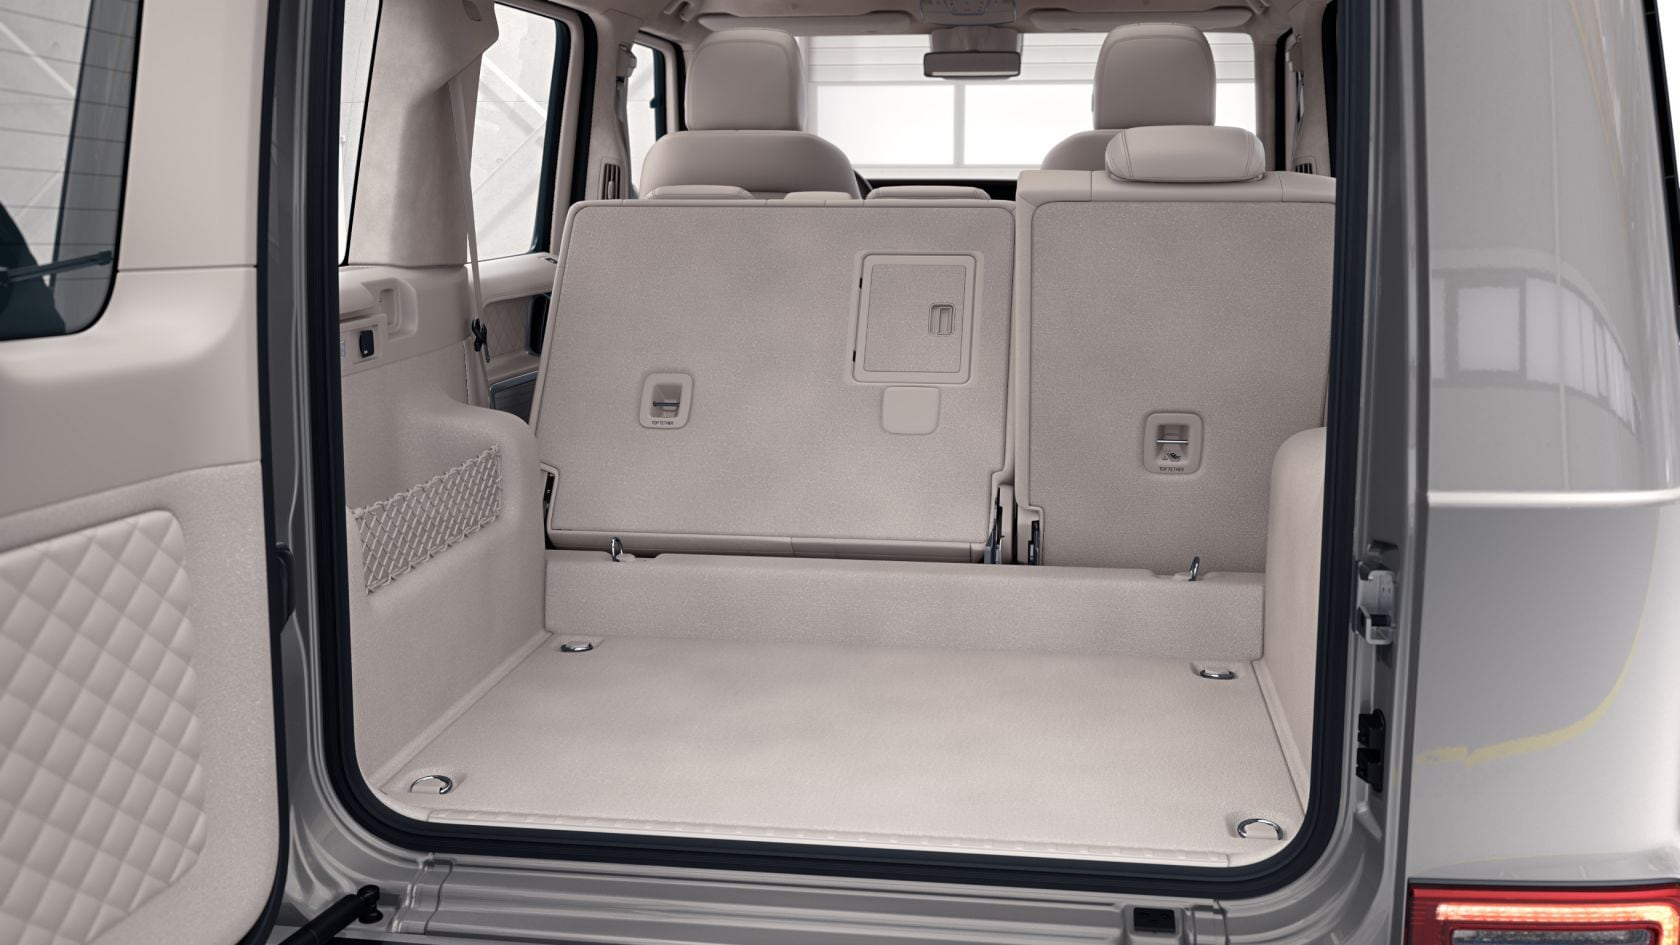 Mercedes-Benz G-Class: folding seat backrests in the rear